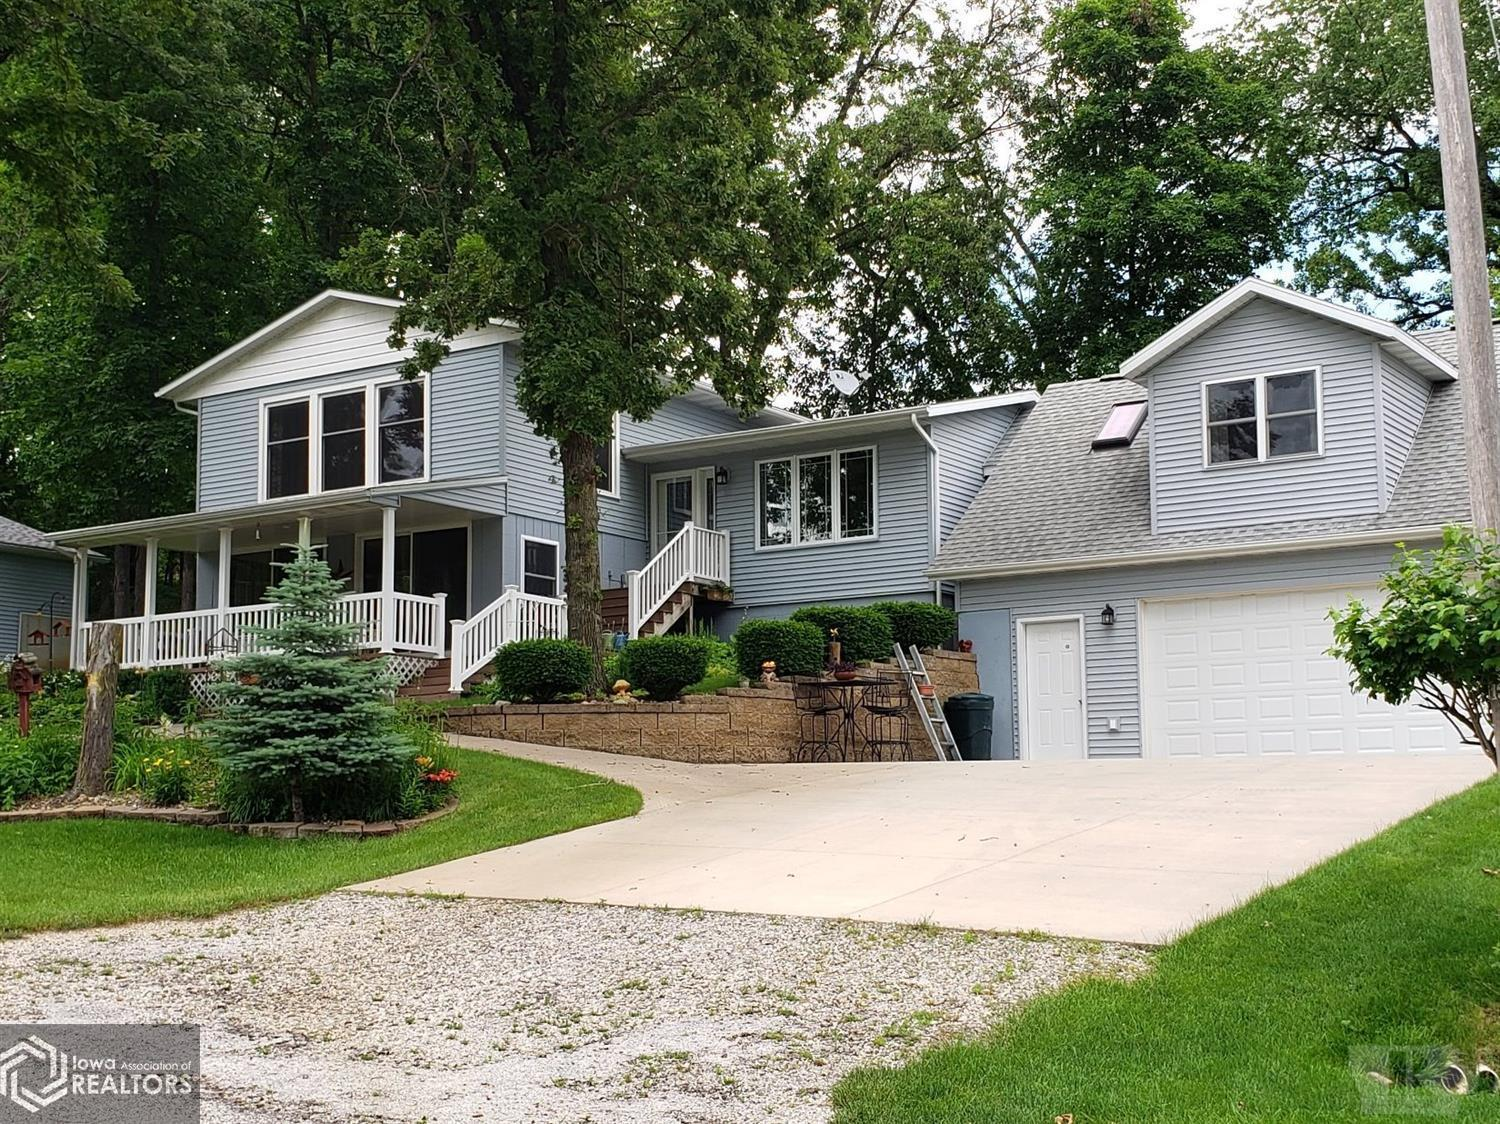 3213 Lakeshore, Brooklyn, Iowa 52211, 3 Bedrooms Bedrooms, ,1 BathroomBathrooms,Single Family,For Sale,Lakeshore,5461747